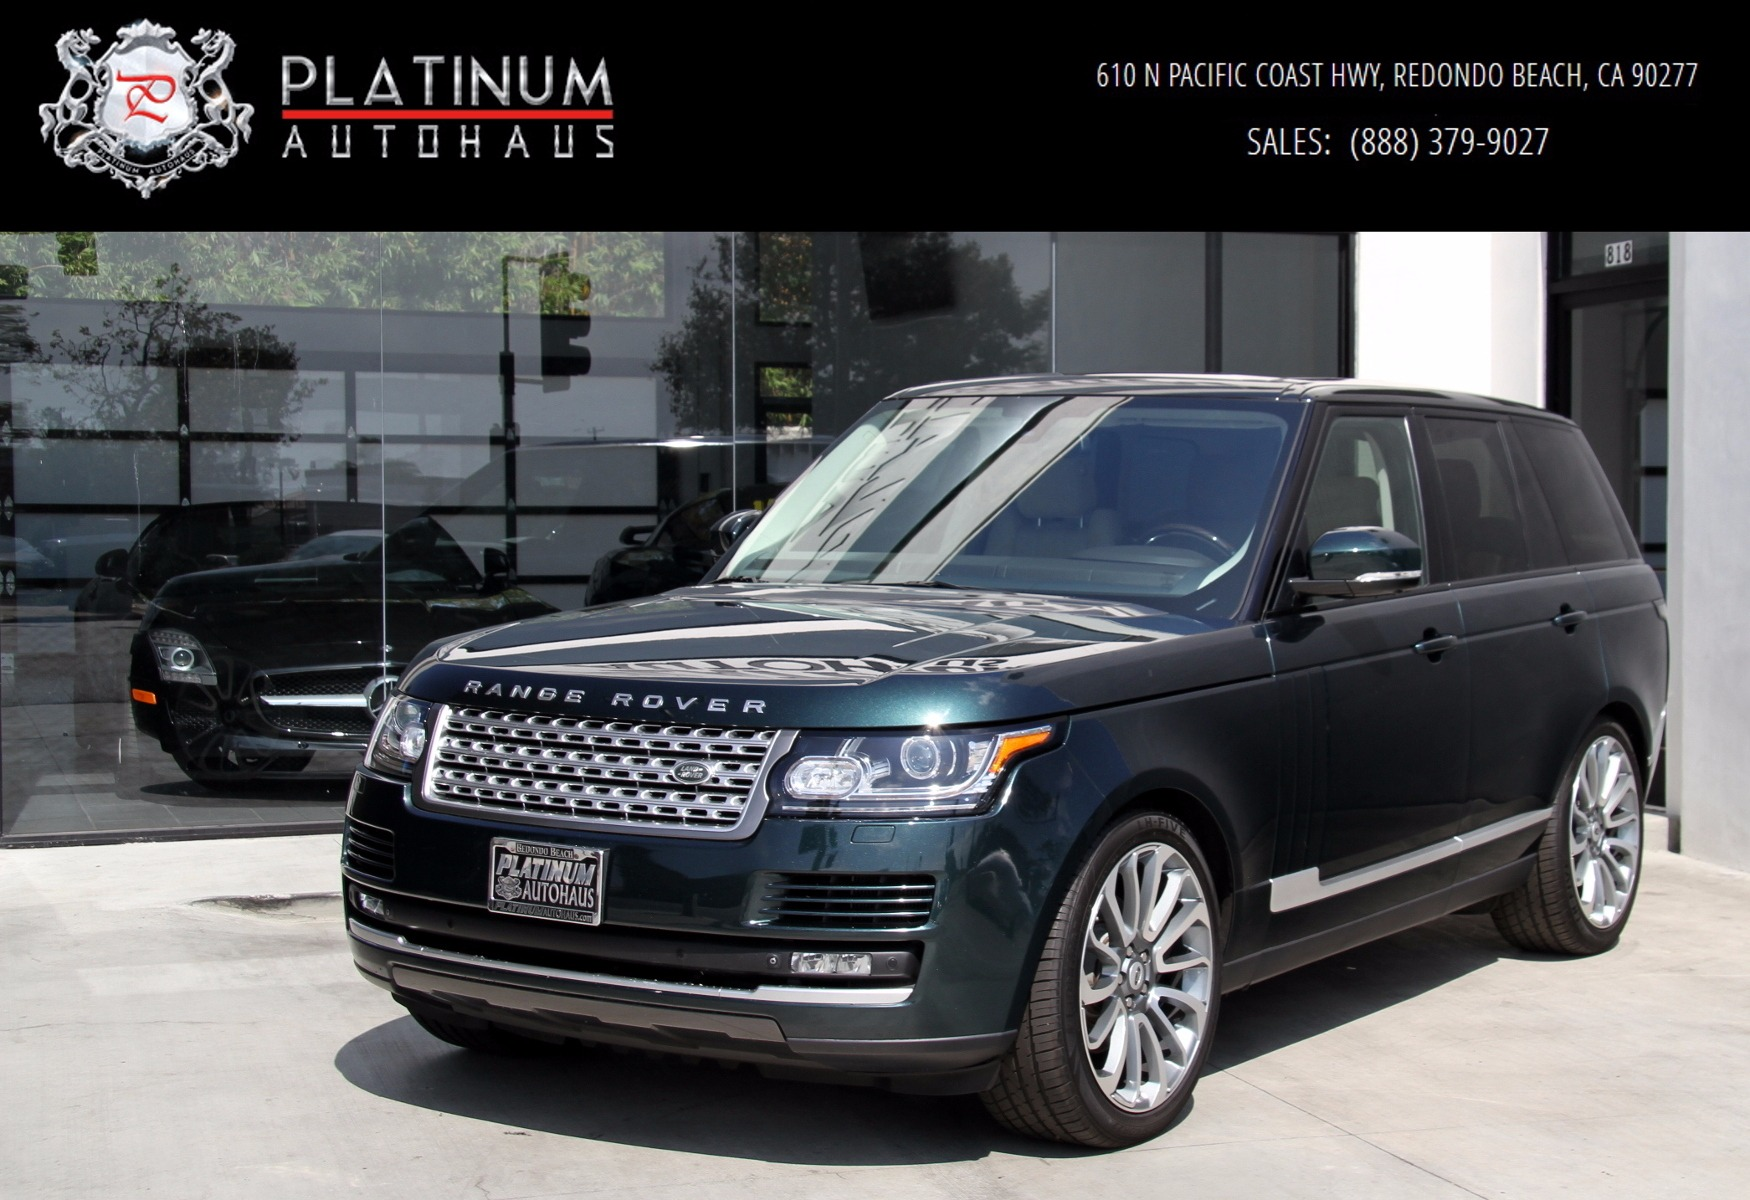 2014 Land Rover Range Rover HSE Stock 5810 for sale near Redondo